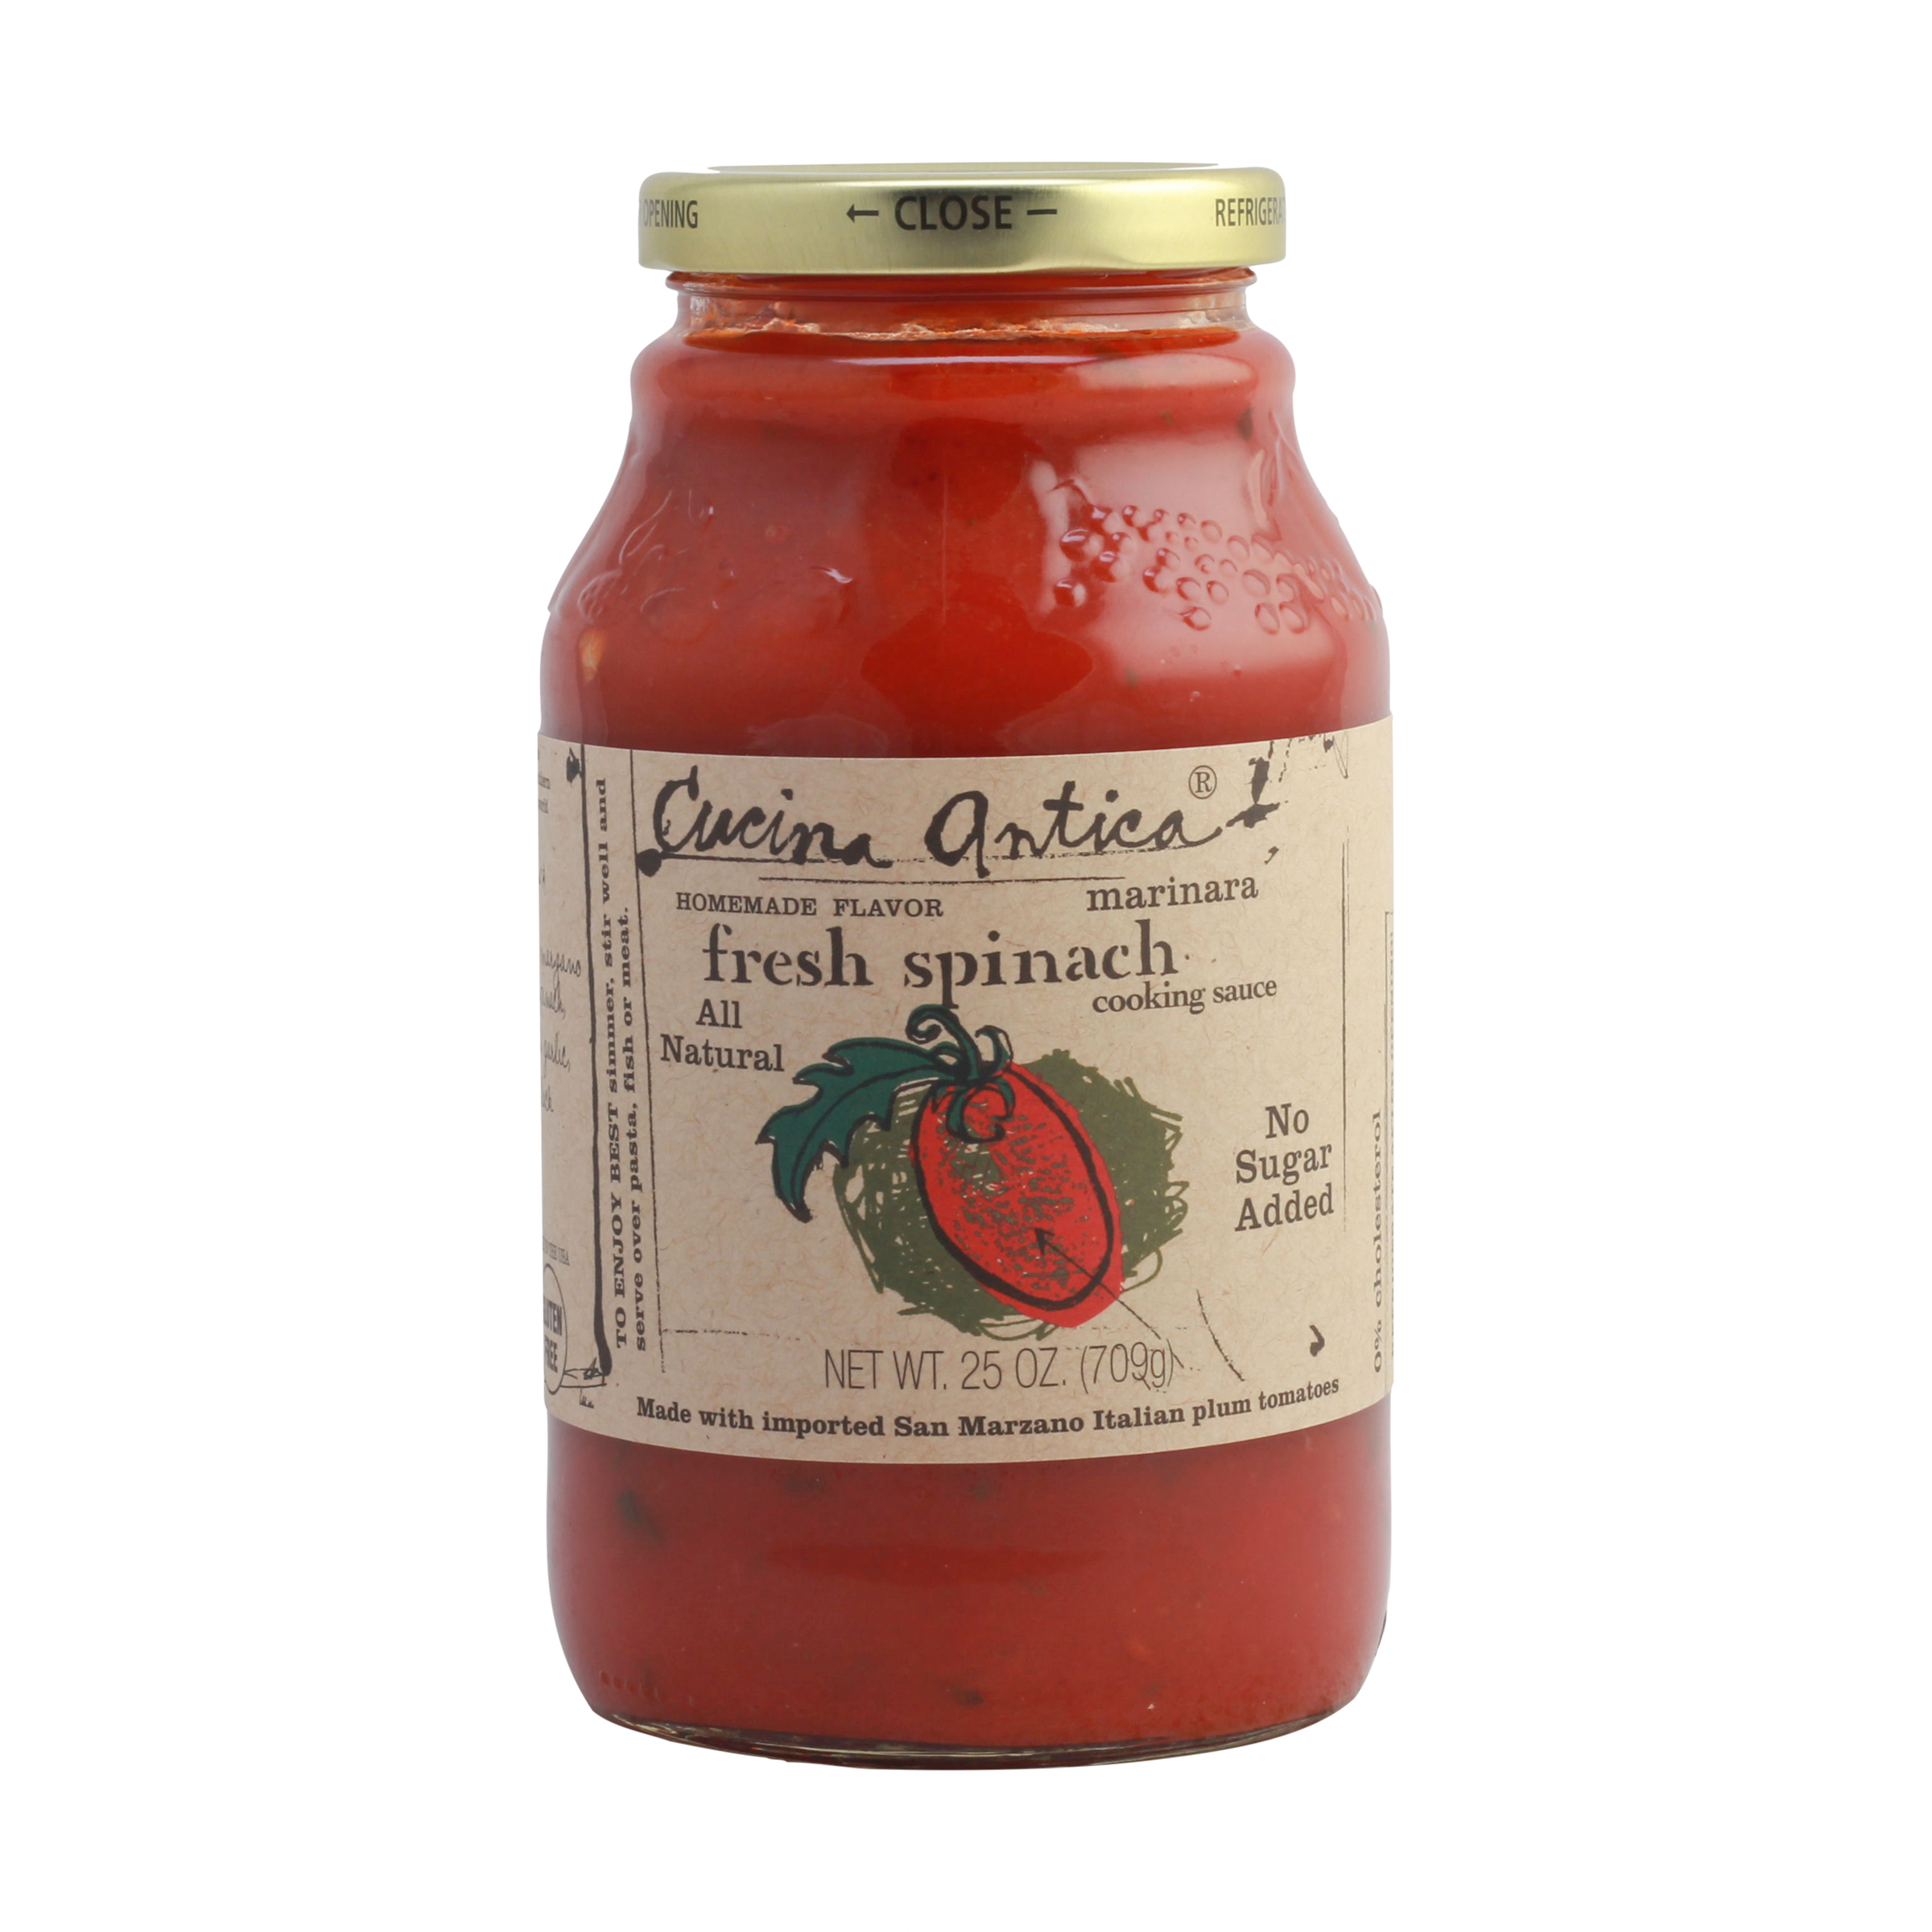 Cucina Antica Tomato Basil Whole Foods Fresh Spinach Cooking Sauce 25 Oz Cucina Antica Whole Foods Market